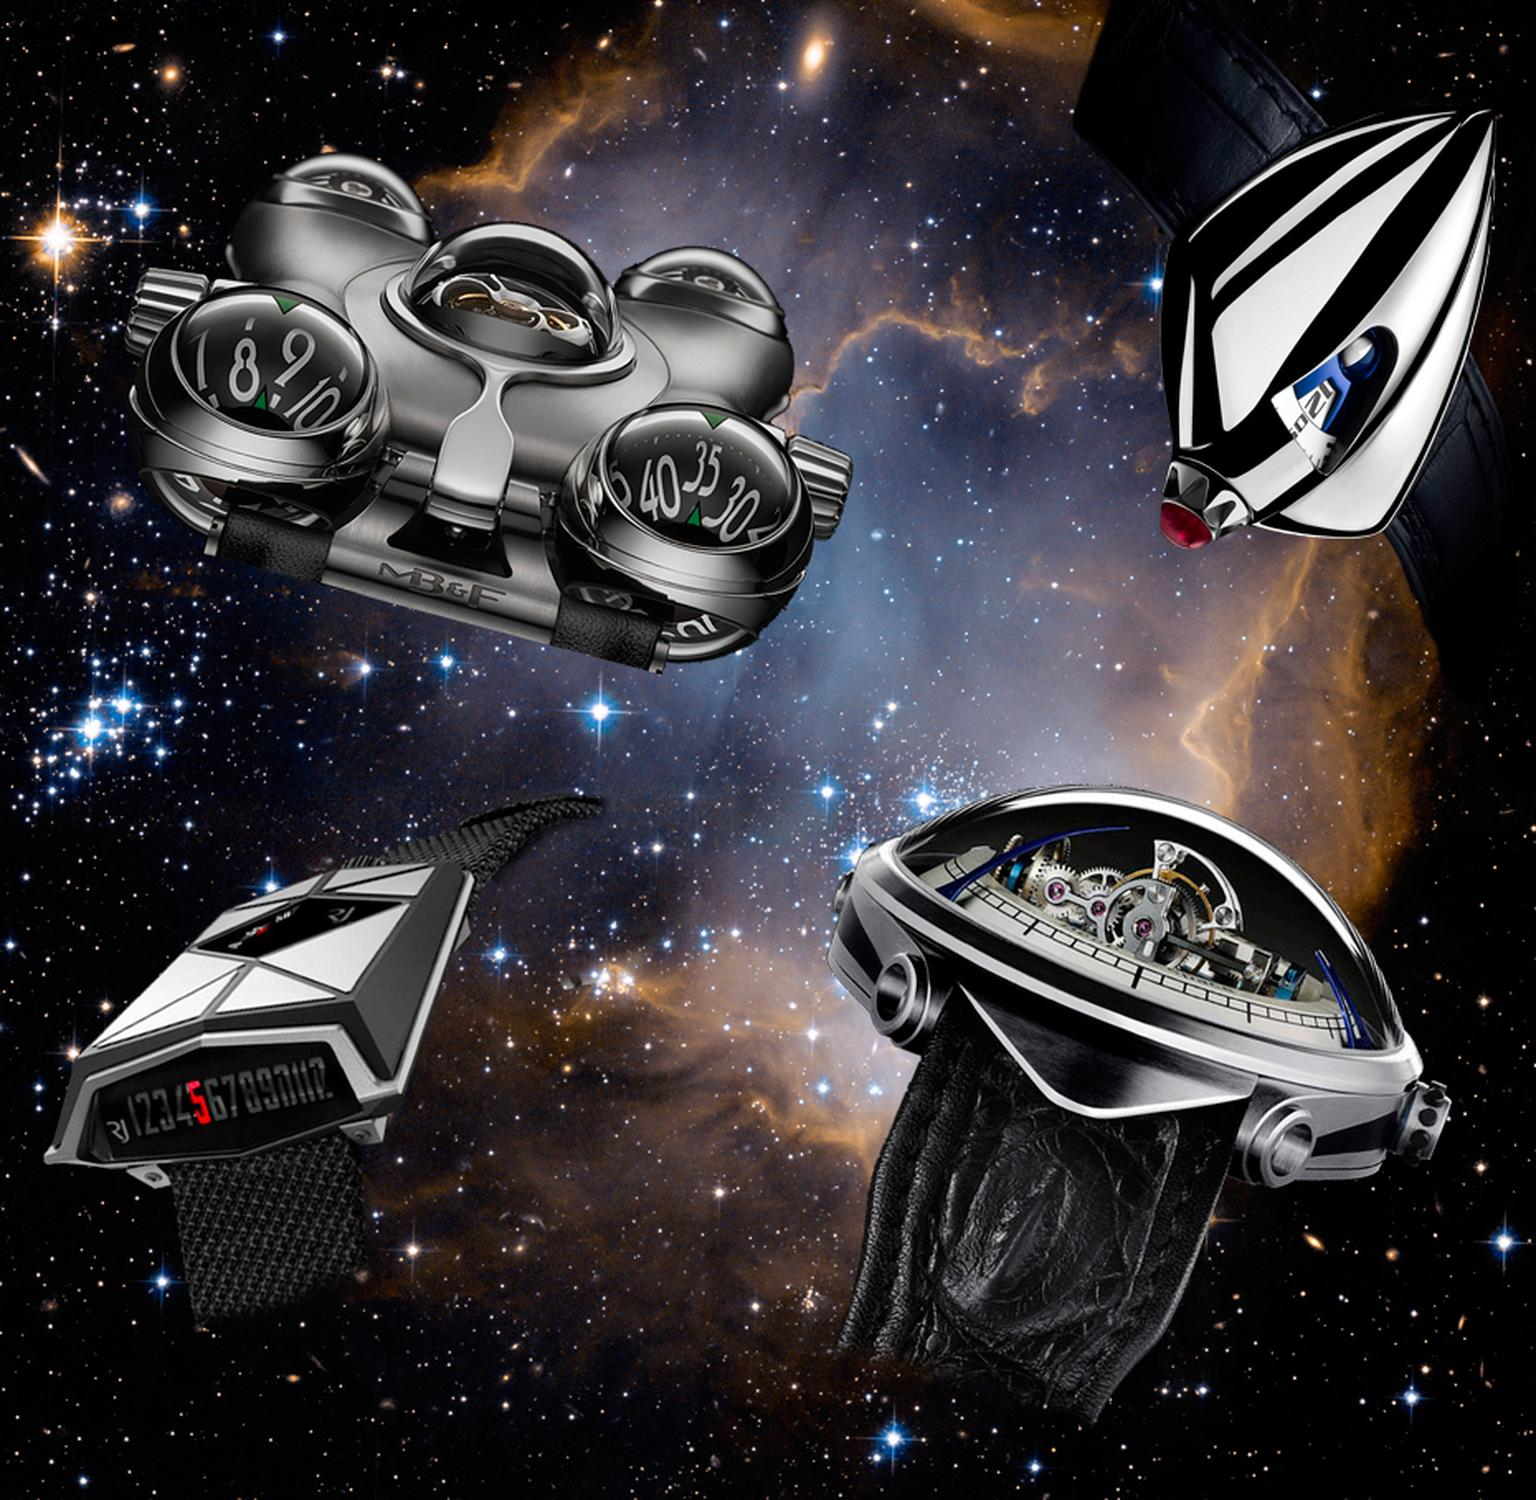 Fans of horology and science fiction can pursue both passions with these extraordinary vessels designed to navigate the far reaches of outer space. From left to right: MB&F HM6 Space Pirate, de Bethune Dream Watch 5, Vianney Halter Deep Space 9; Romain Je